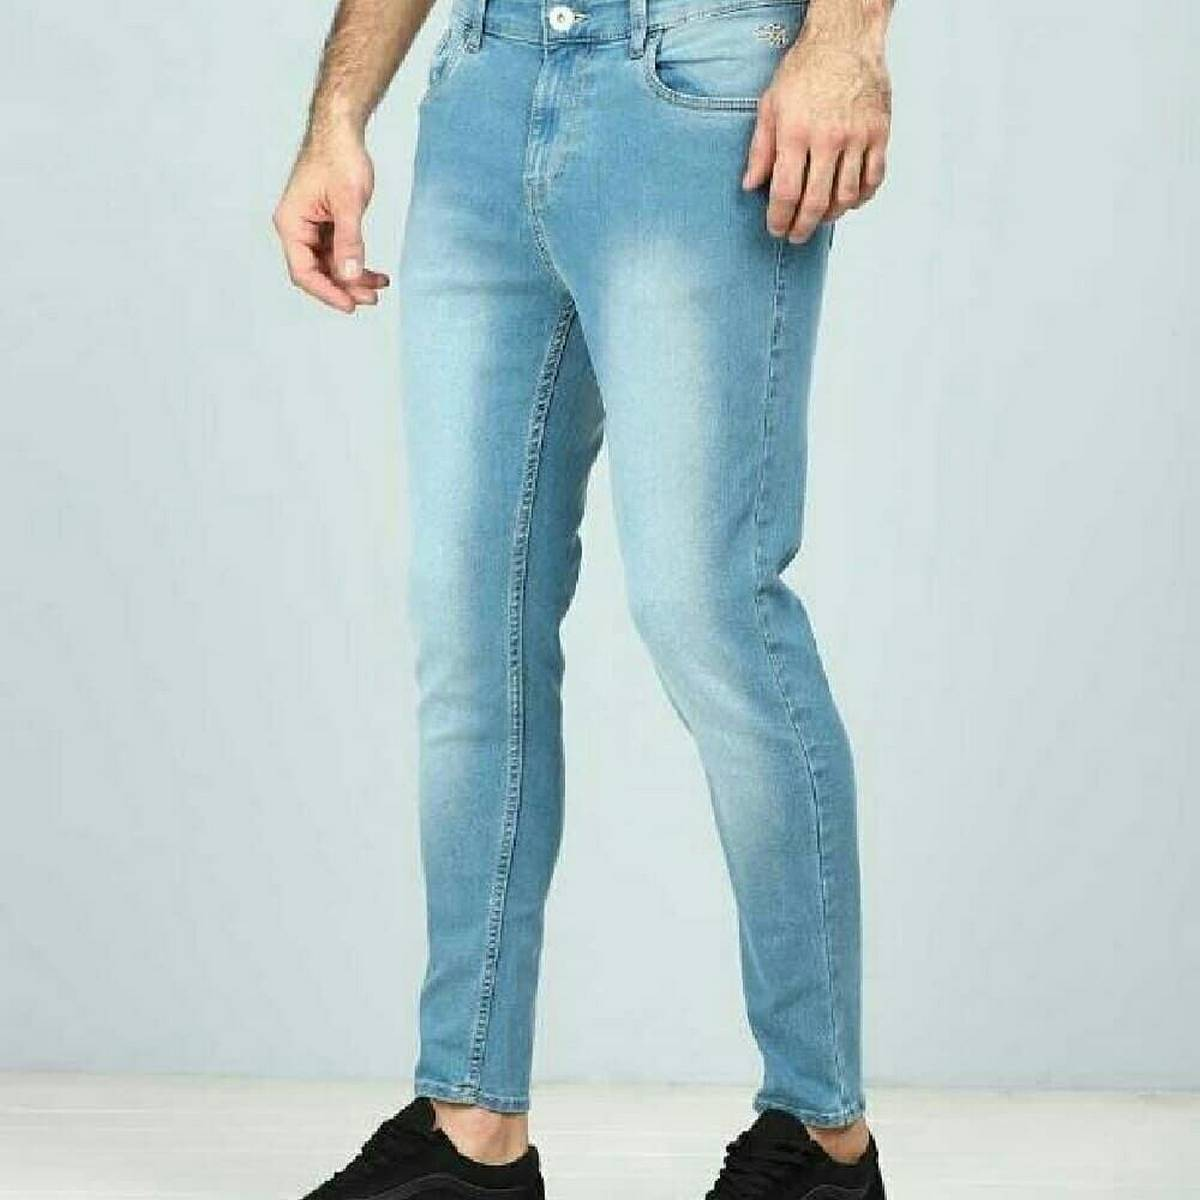 New 2020 design Mens Imported Jeans Denim brand Pencil Pants Fashion Men Casual Slim Fit Straight Stretch Feet Skinny Zipper Jeans For Male Hot Sell Trousers